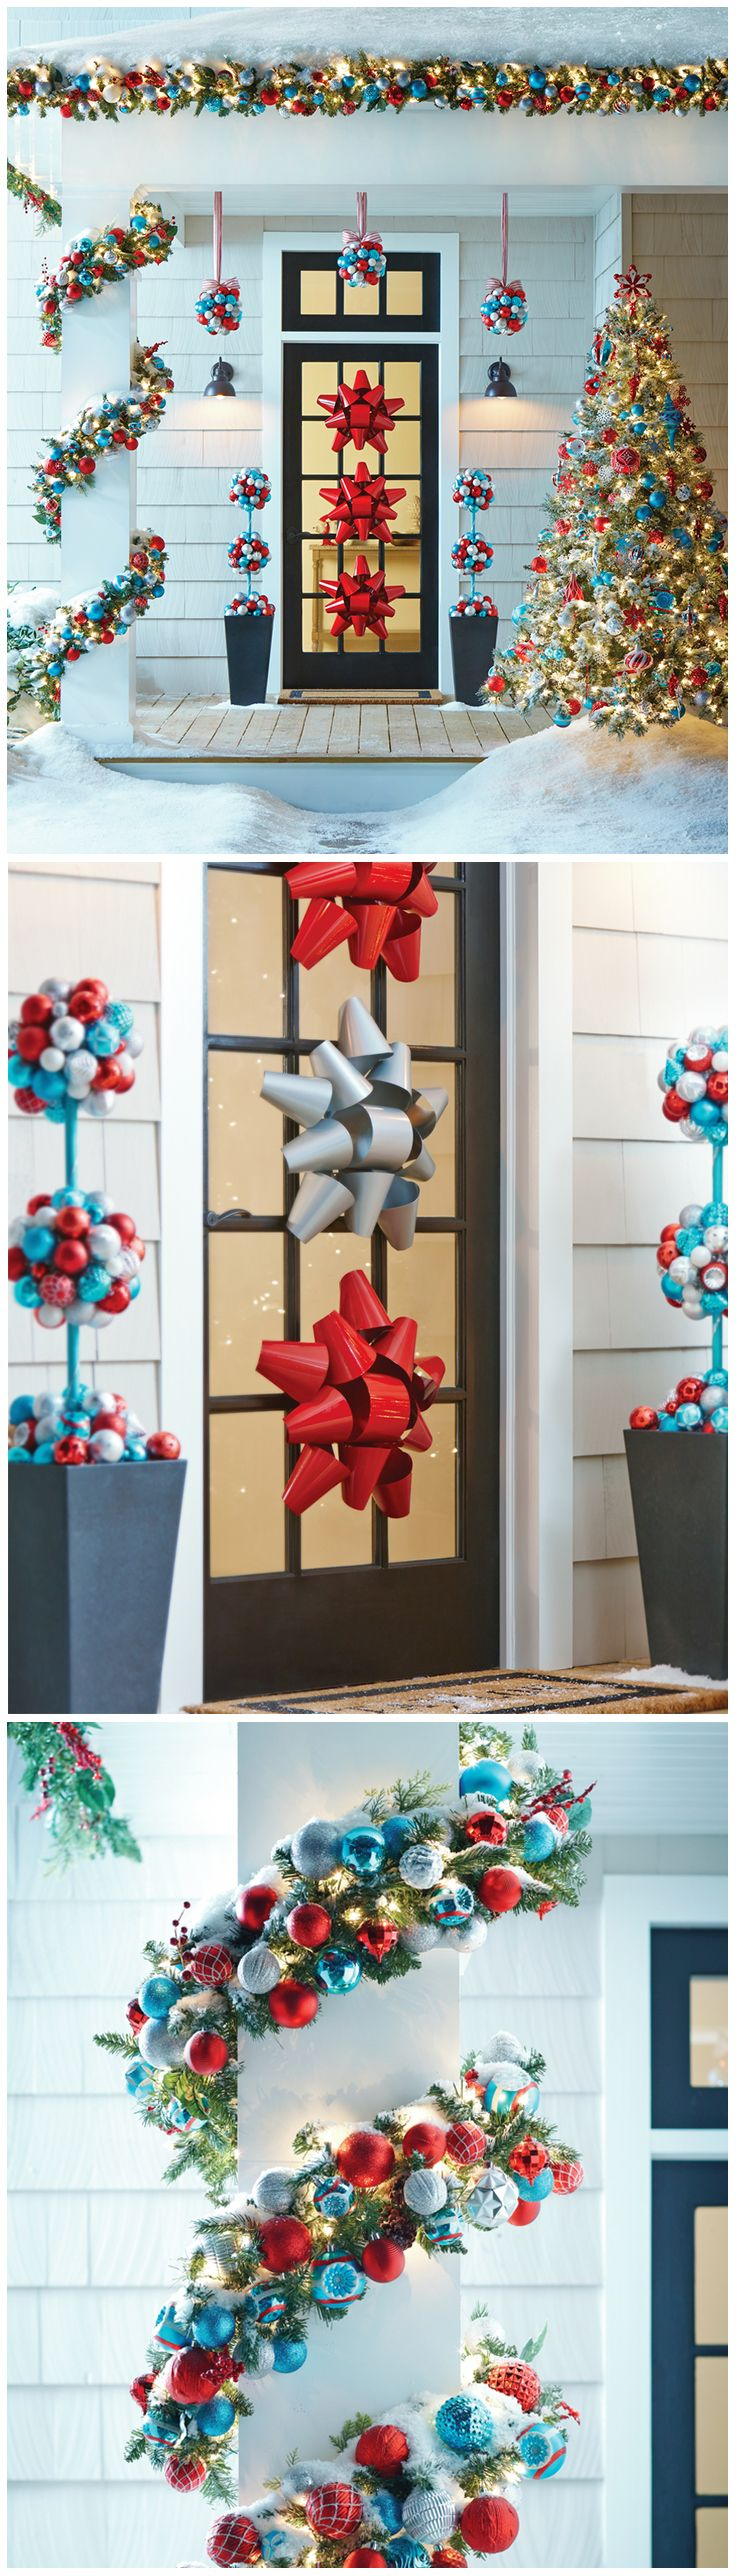 sunday hats The frosty blues and silvers are warmed up by bright  festive red in these outdoor Christmas decorations from The North Pole Collection by Martha Stewart Living  It  39 s a fun  whimsical look for the holiday season  The Home Depot has string lights  garland and wreaths to create the holiday look you  39 re dreaming of for your front door    and throughout your home  Click through to start your holiday decor planning